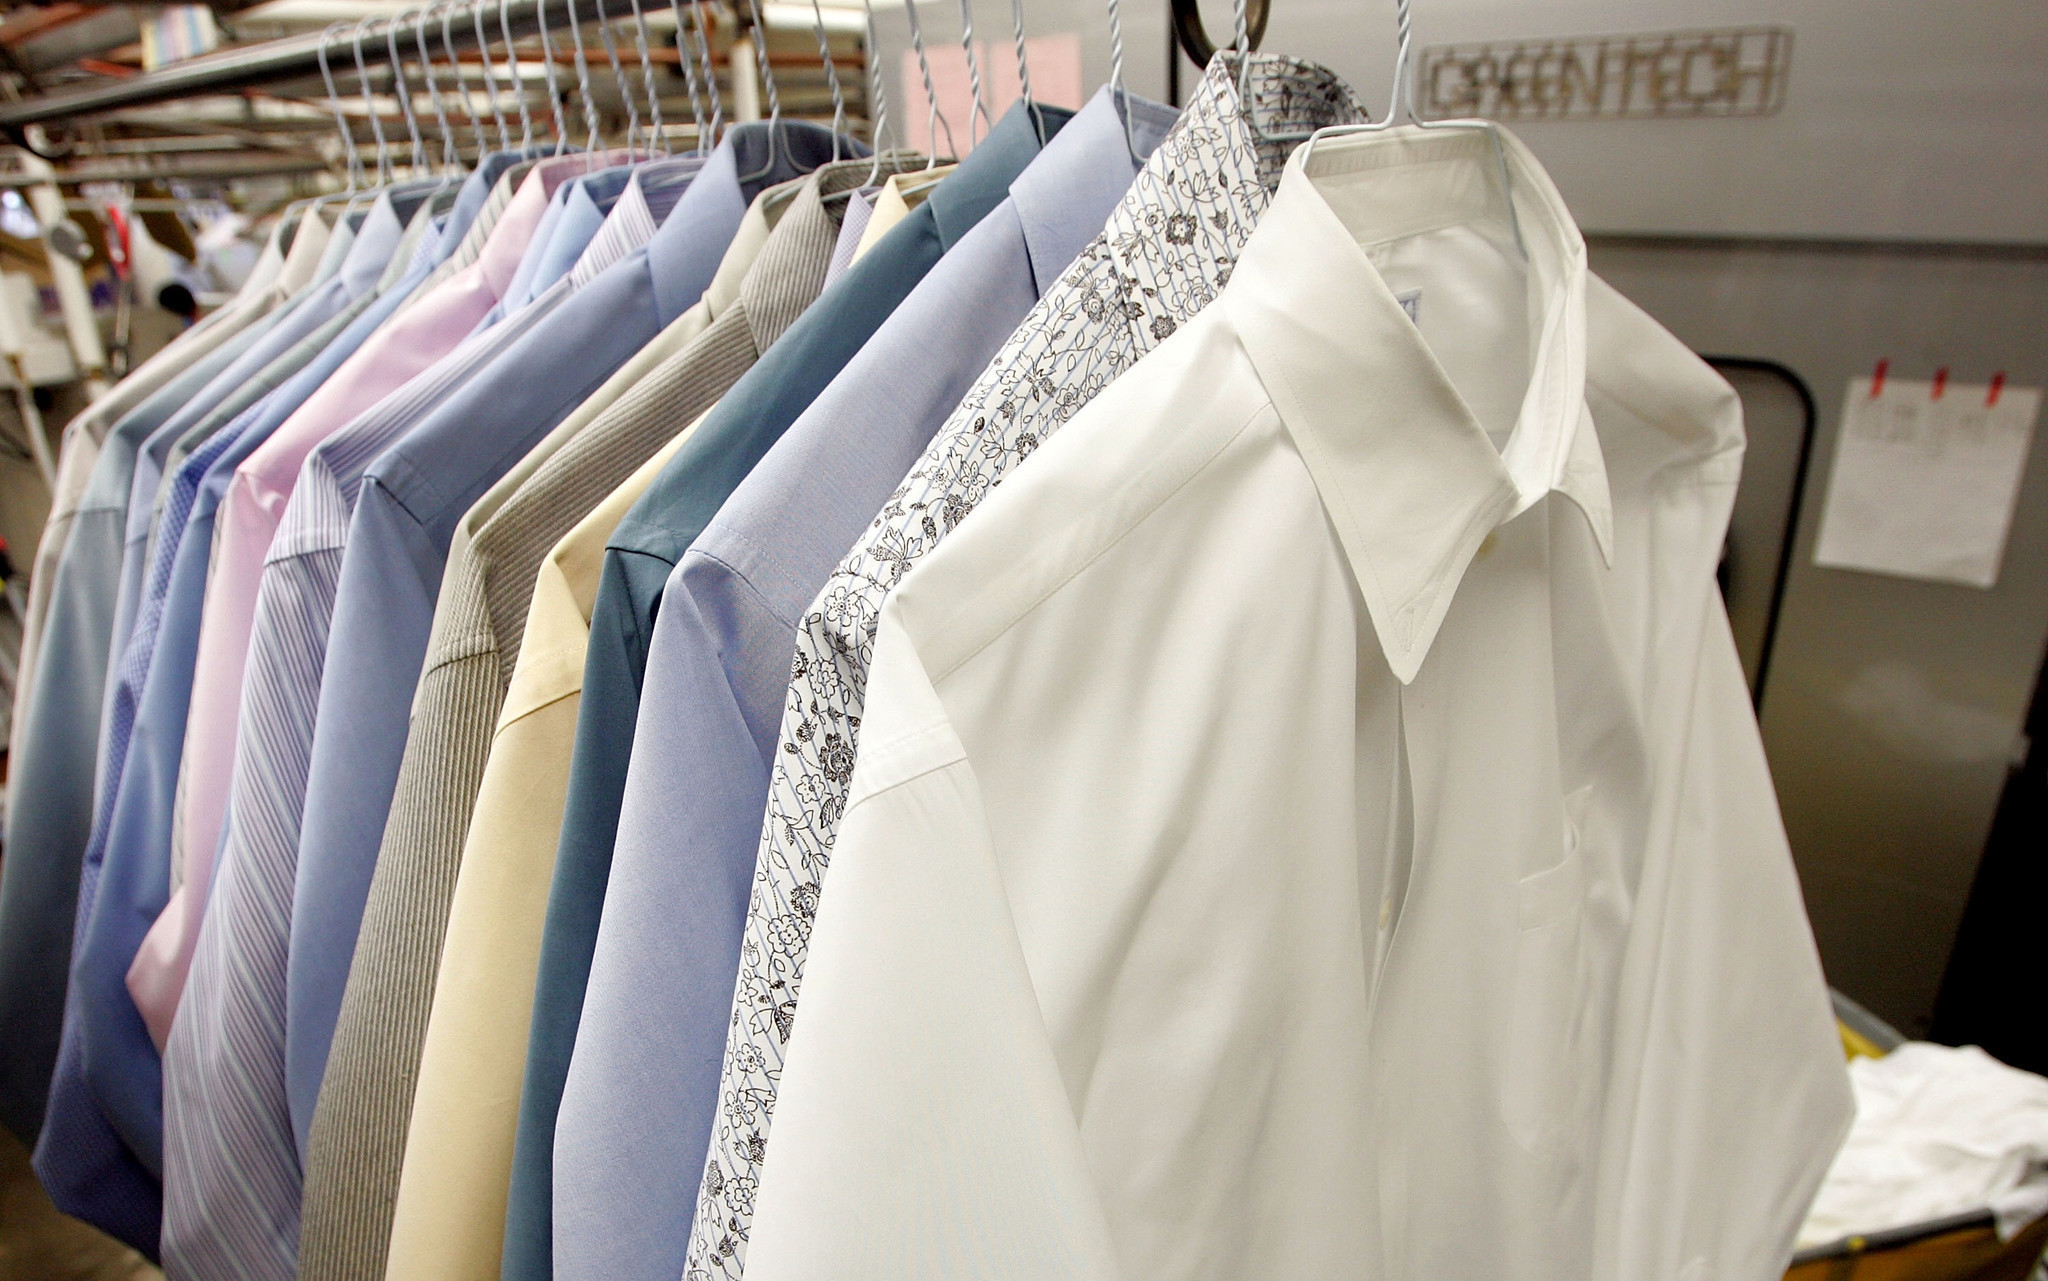 Baltimore makes top 10 list for spending on dry cleaning